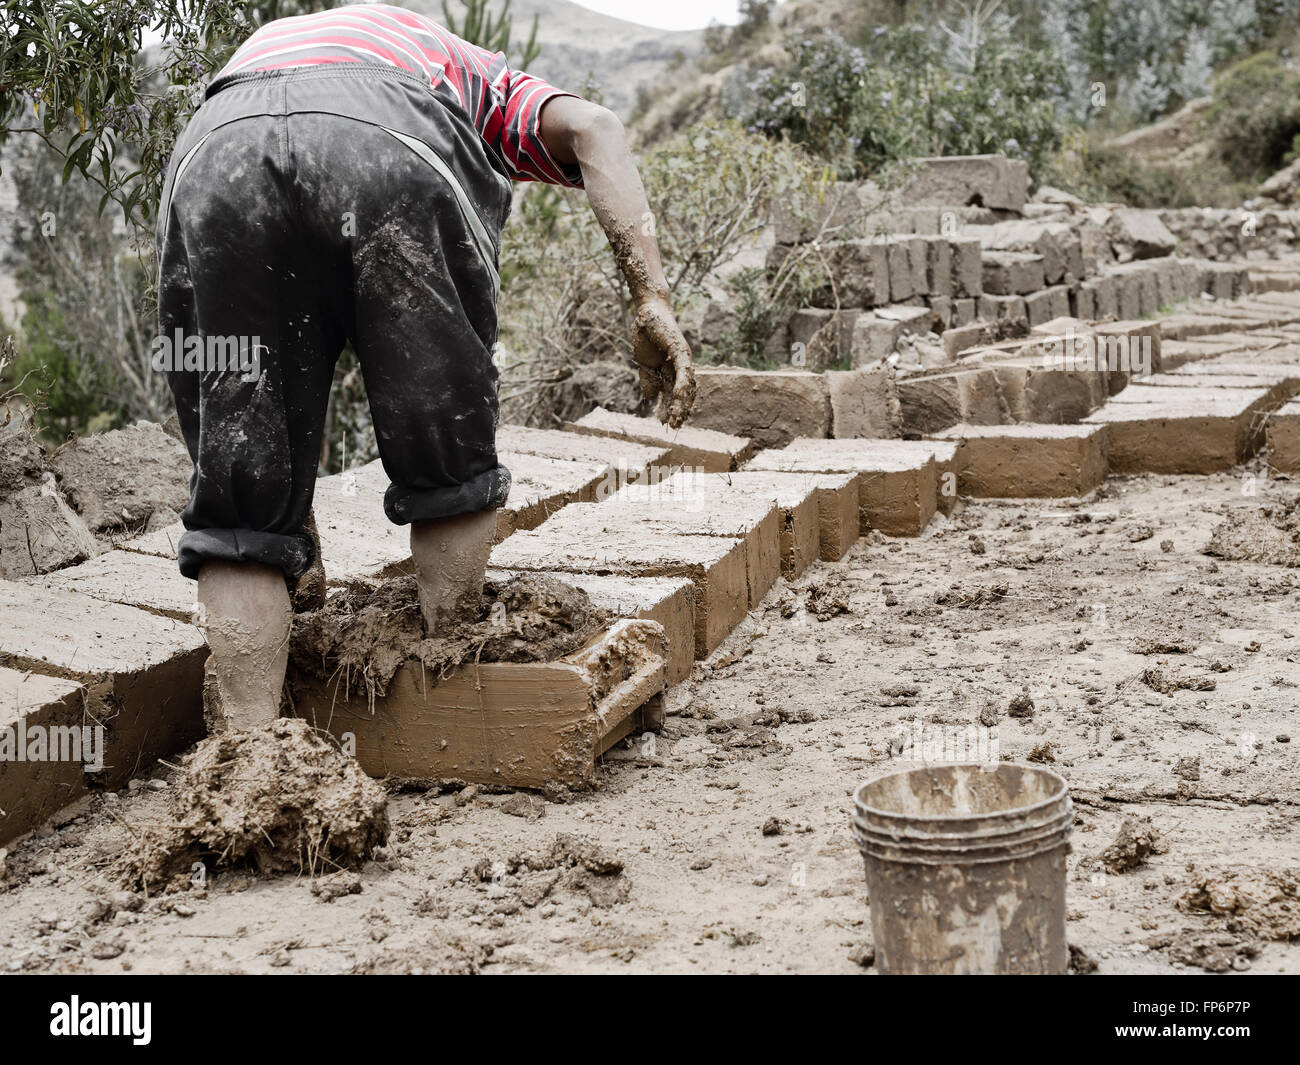 http://c8.alamy.com/comp/FP6P7P/boy-making-traditional-adobe-mud-bricks-to-build-his-own-house-in-FP6P7P.jpg